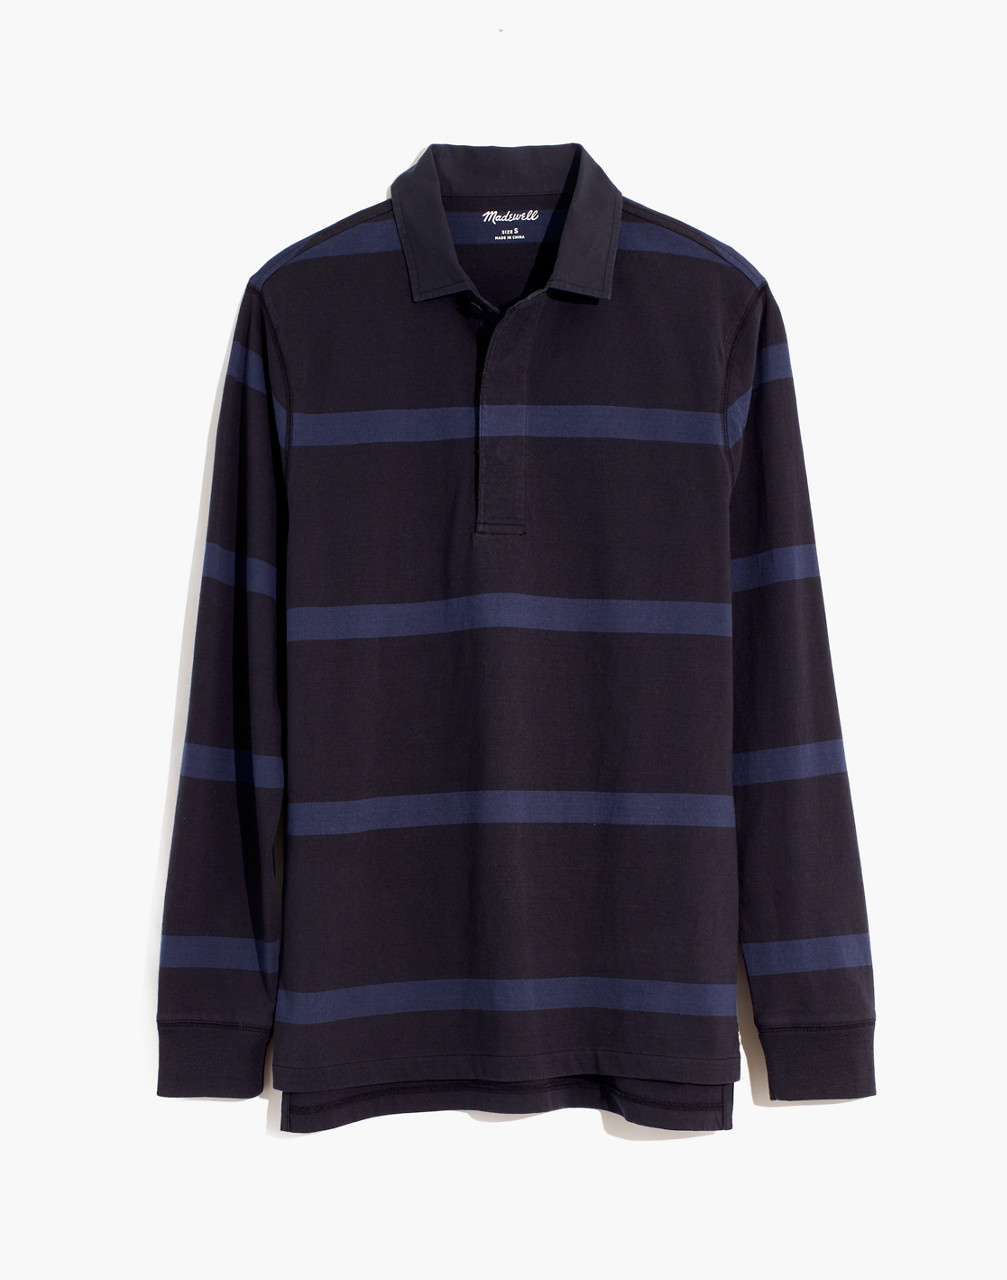 80s Men's Fashion & Clothing for Guys Striped Rugby Shirt $79.50 AT vintagedancer.com